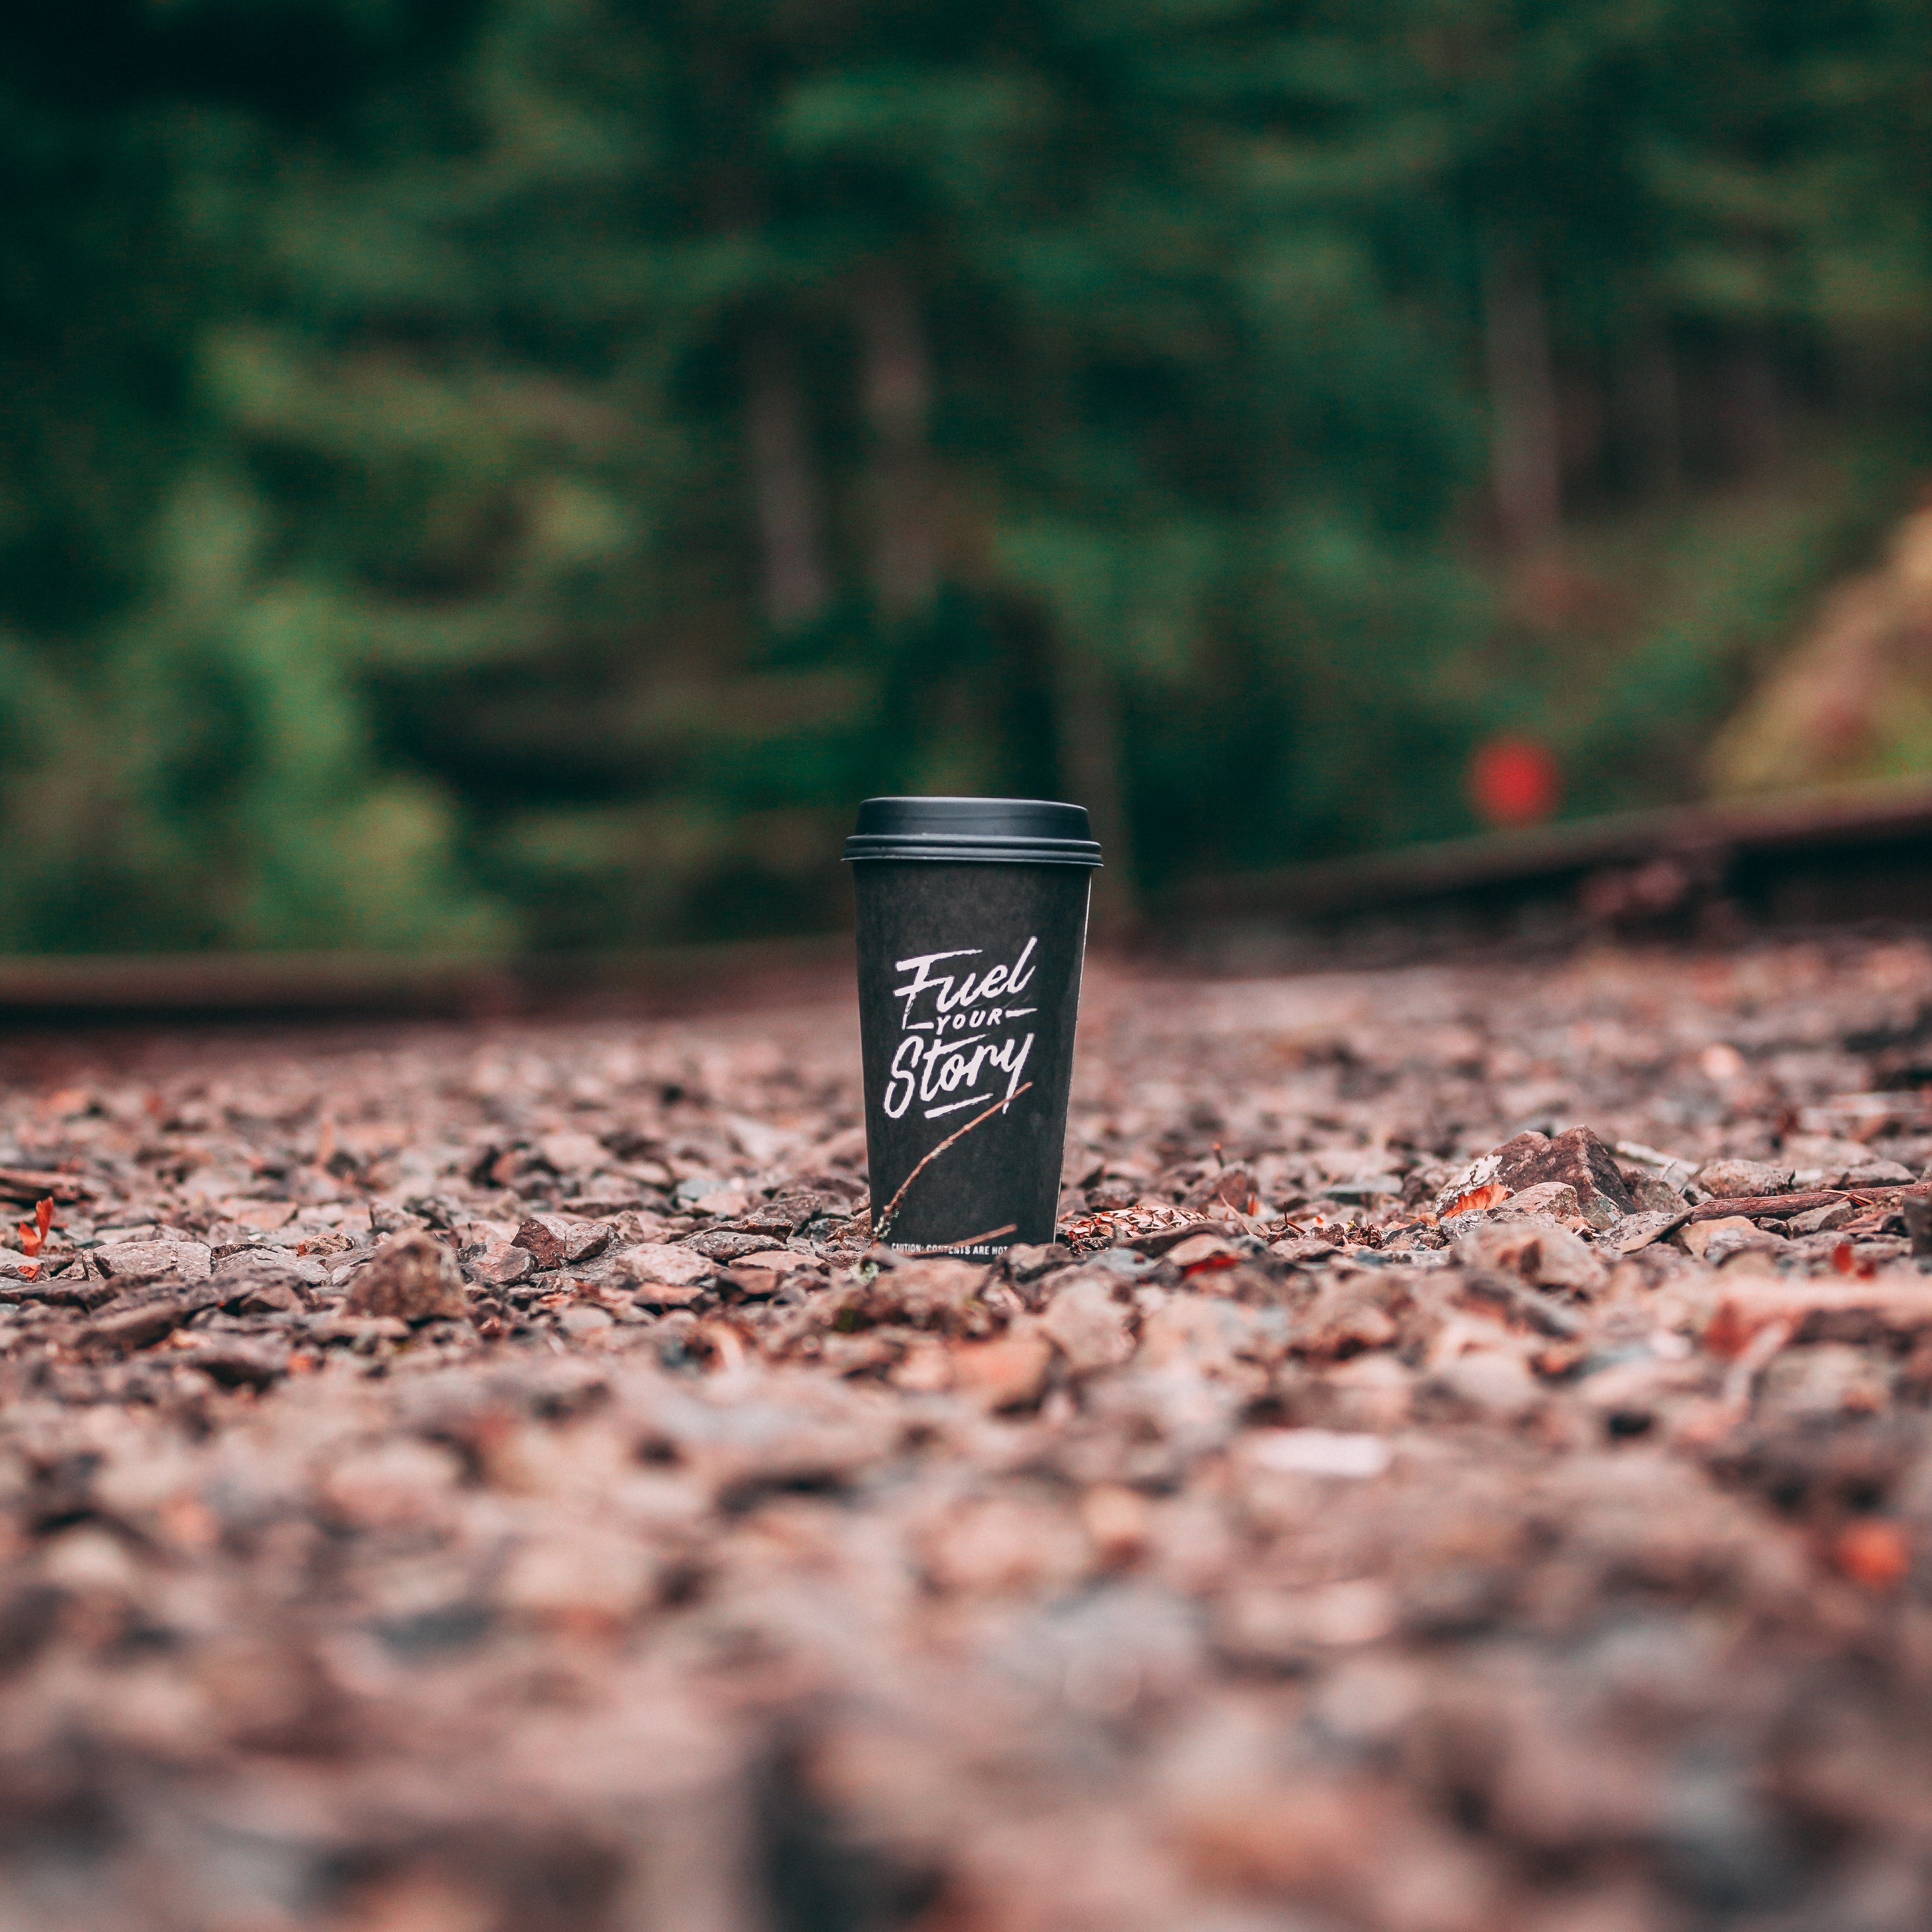 Fuel Story graphic tumbler on ground during daytime